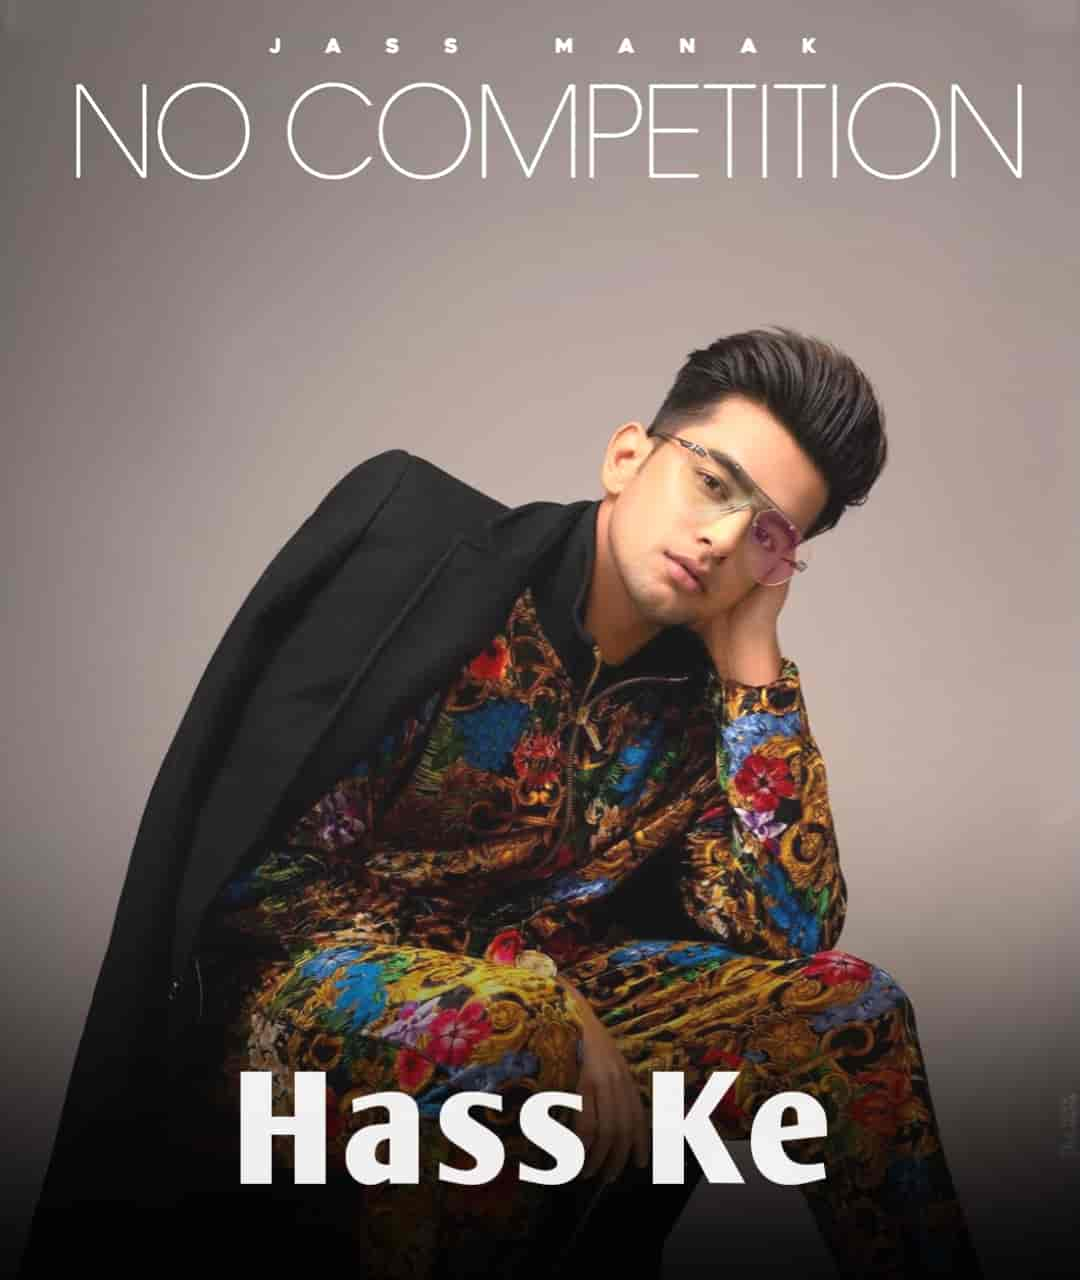 Hass Ke Punjabi Song Image From Album No Competition Of Jass Manak